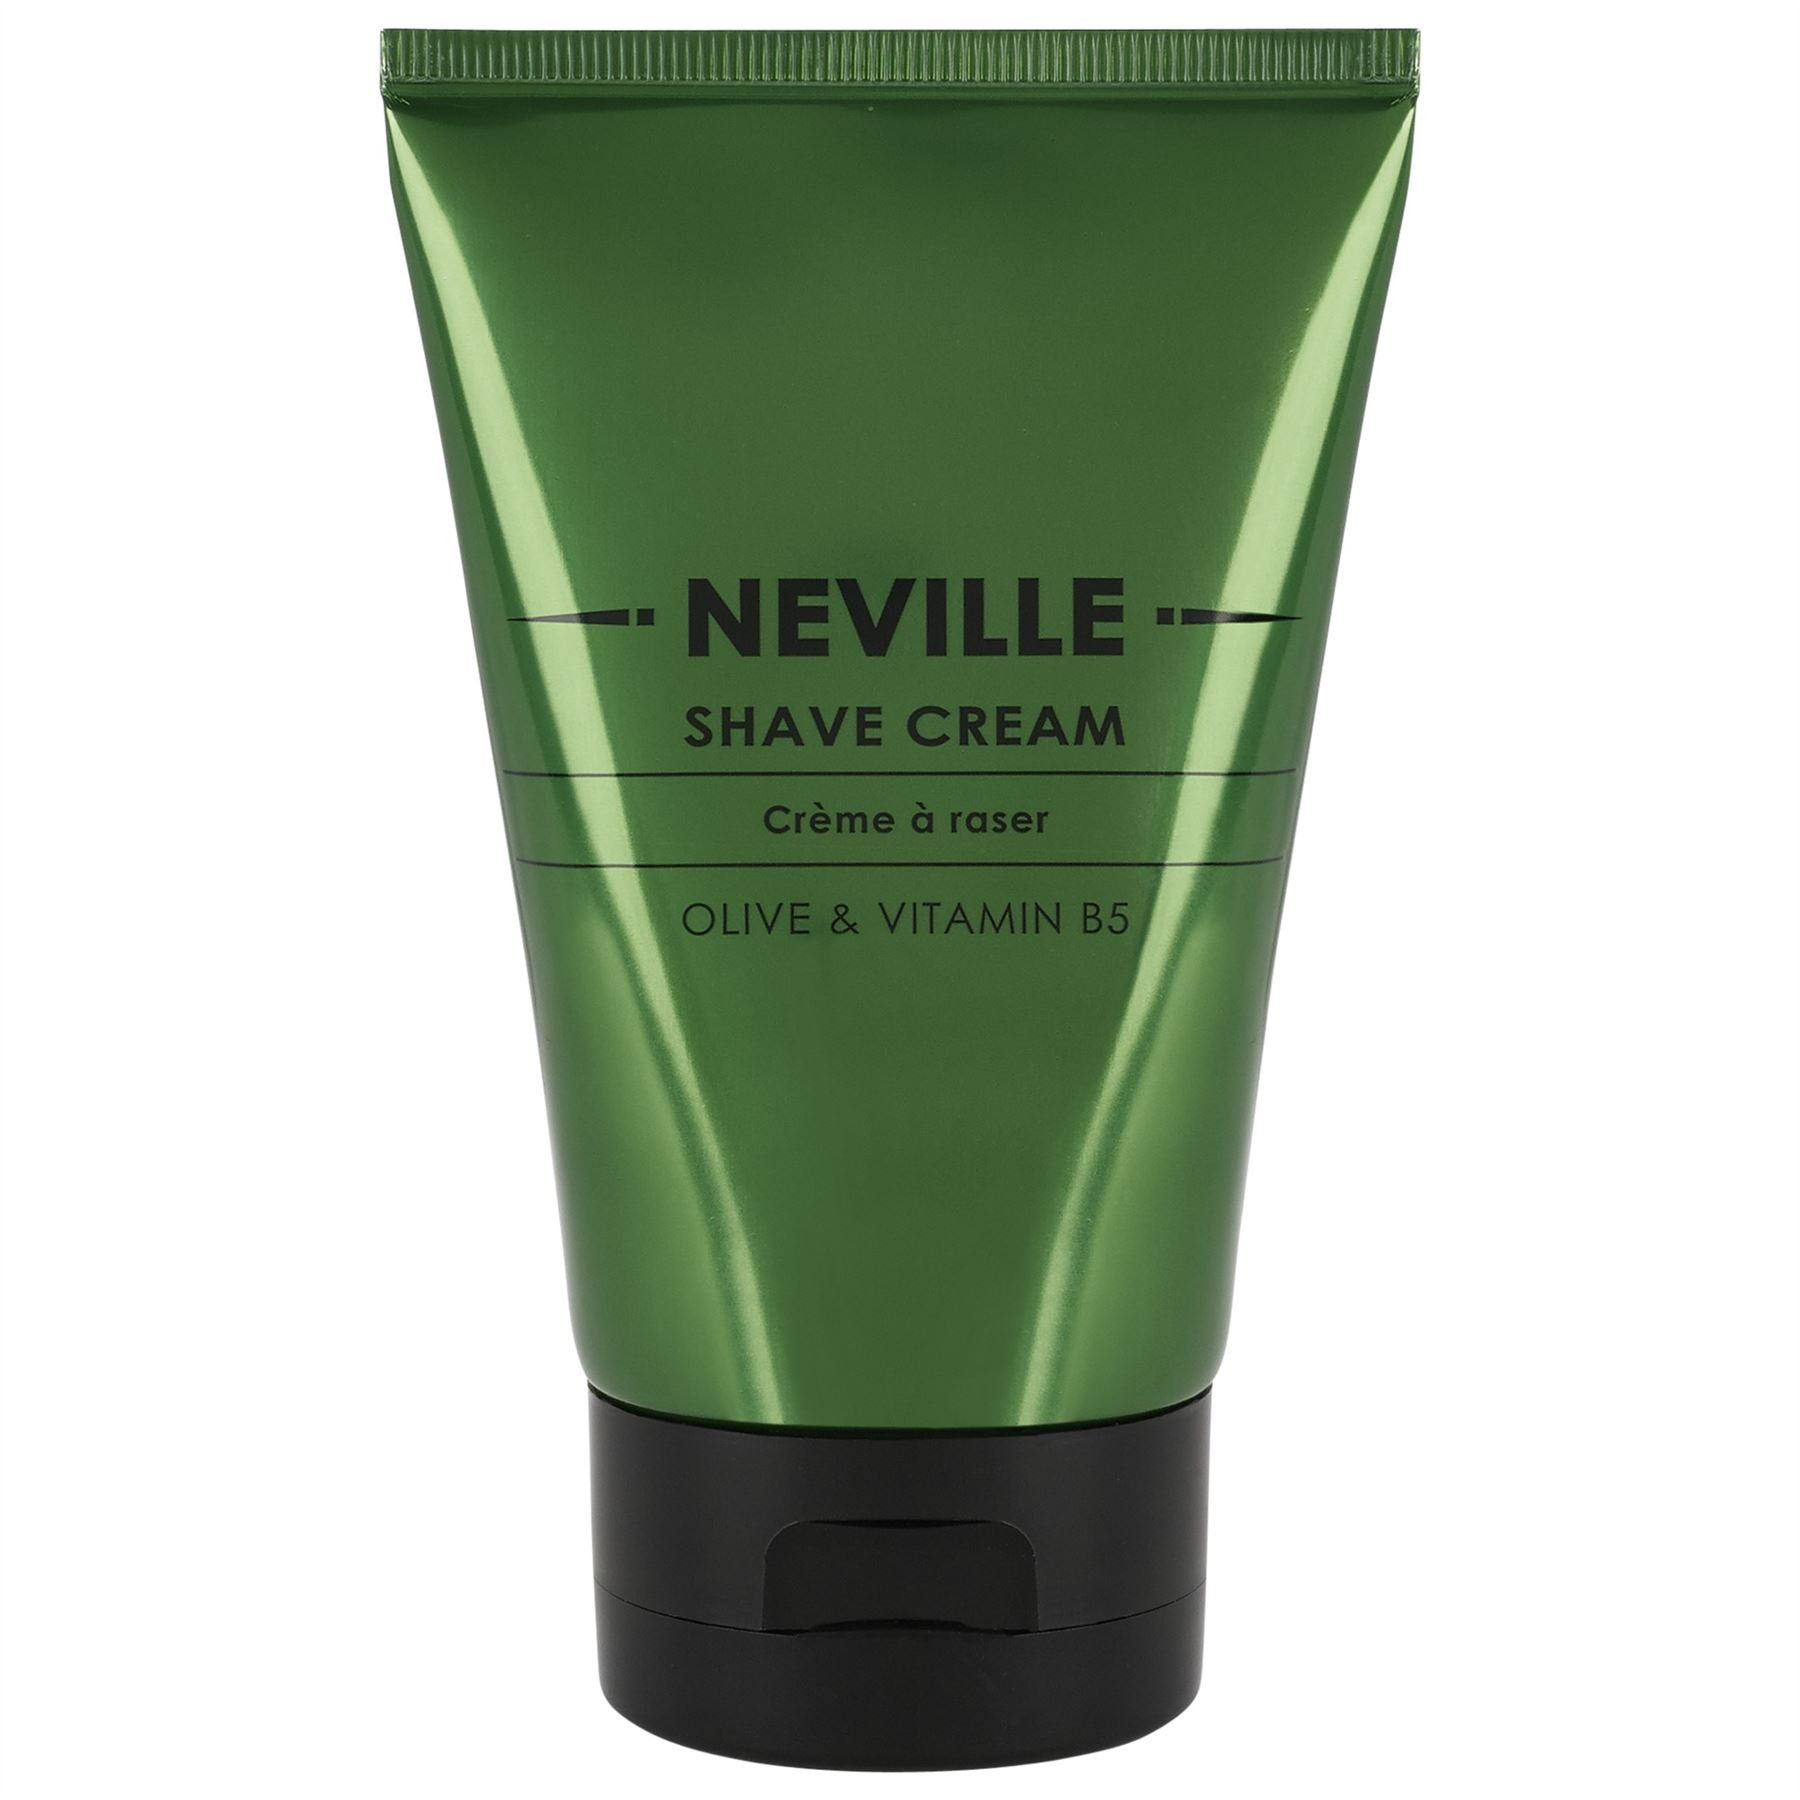 Neville Shave Cream 100ml - Pack of 2